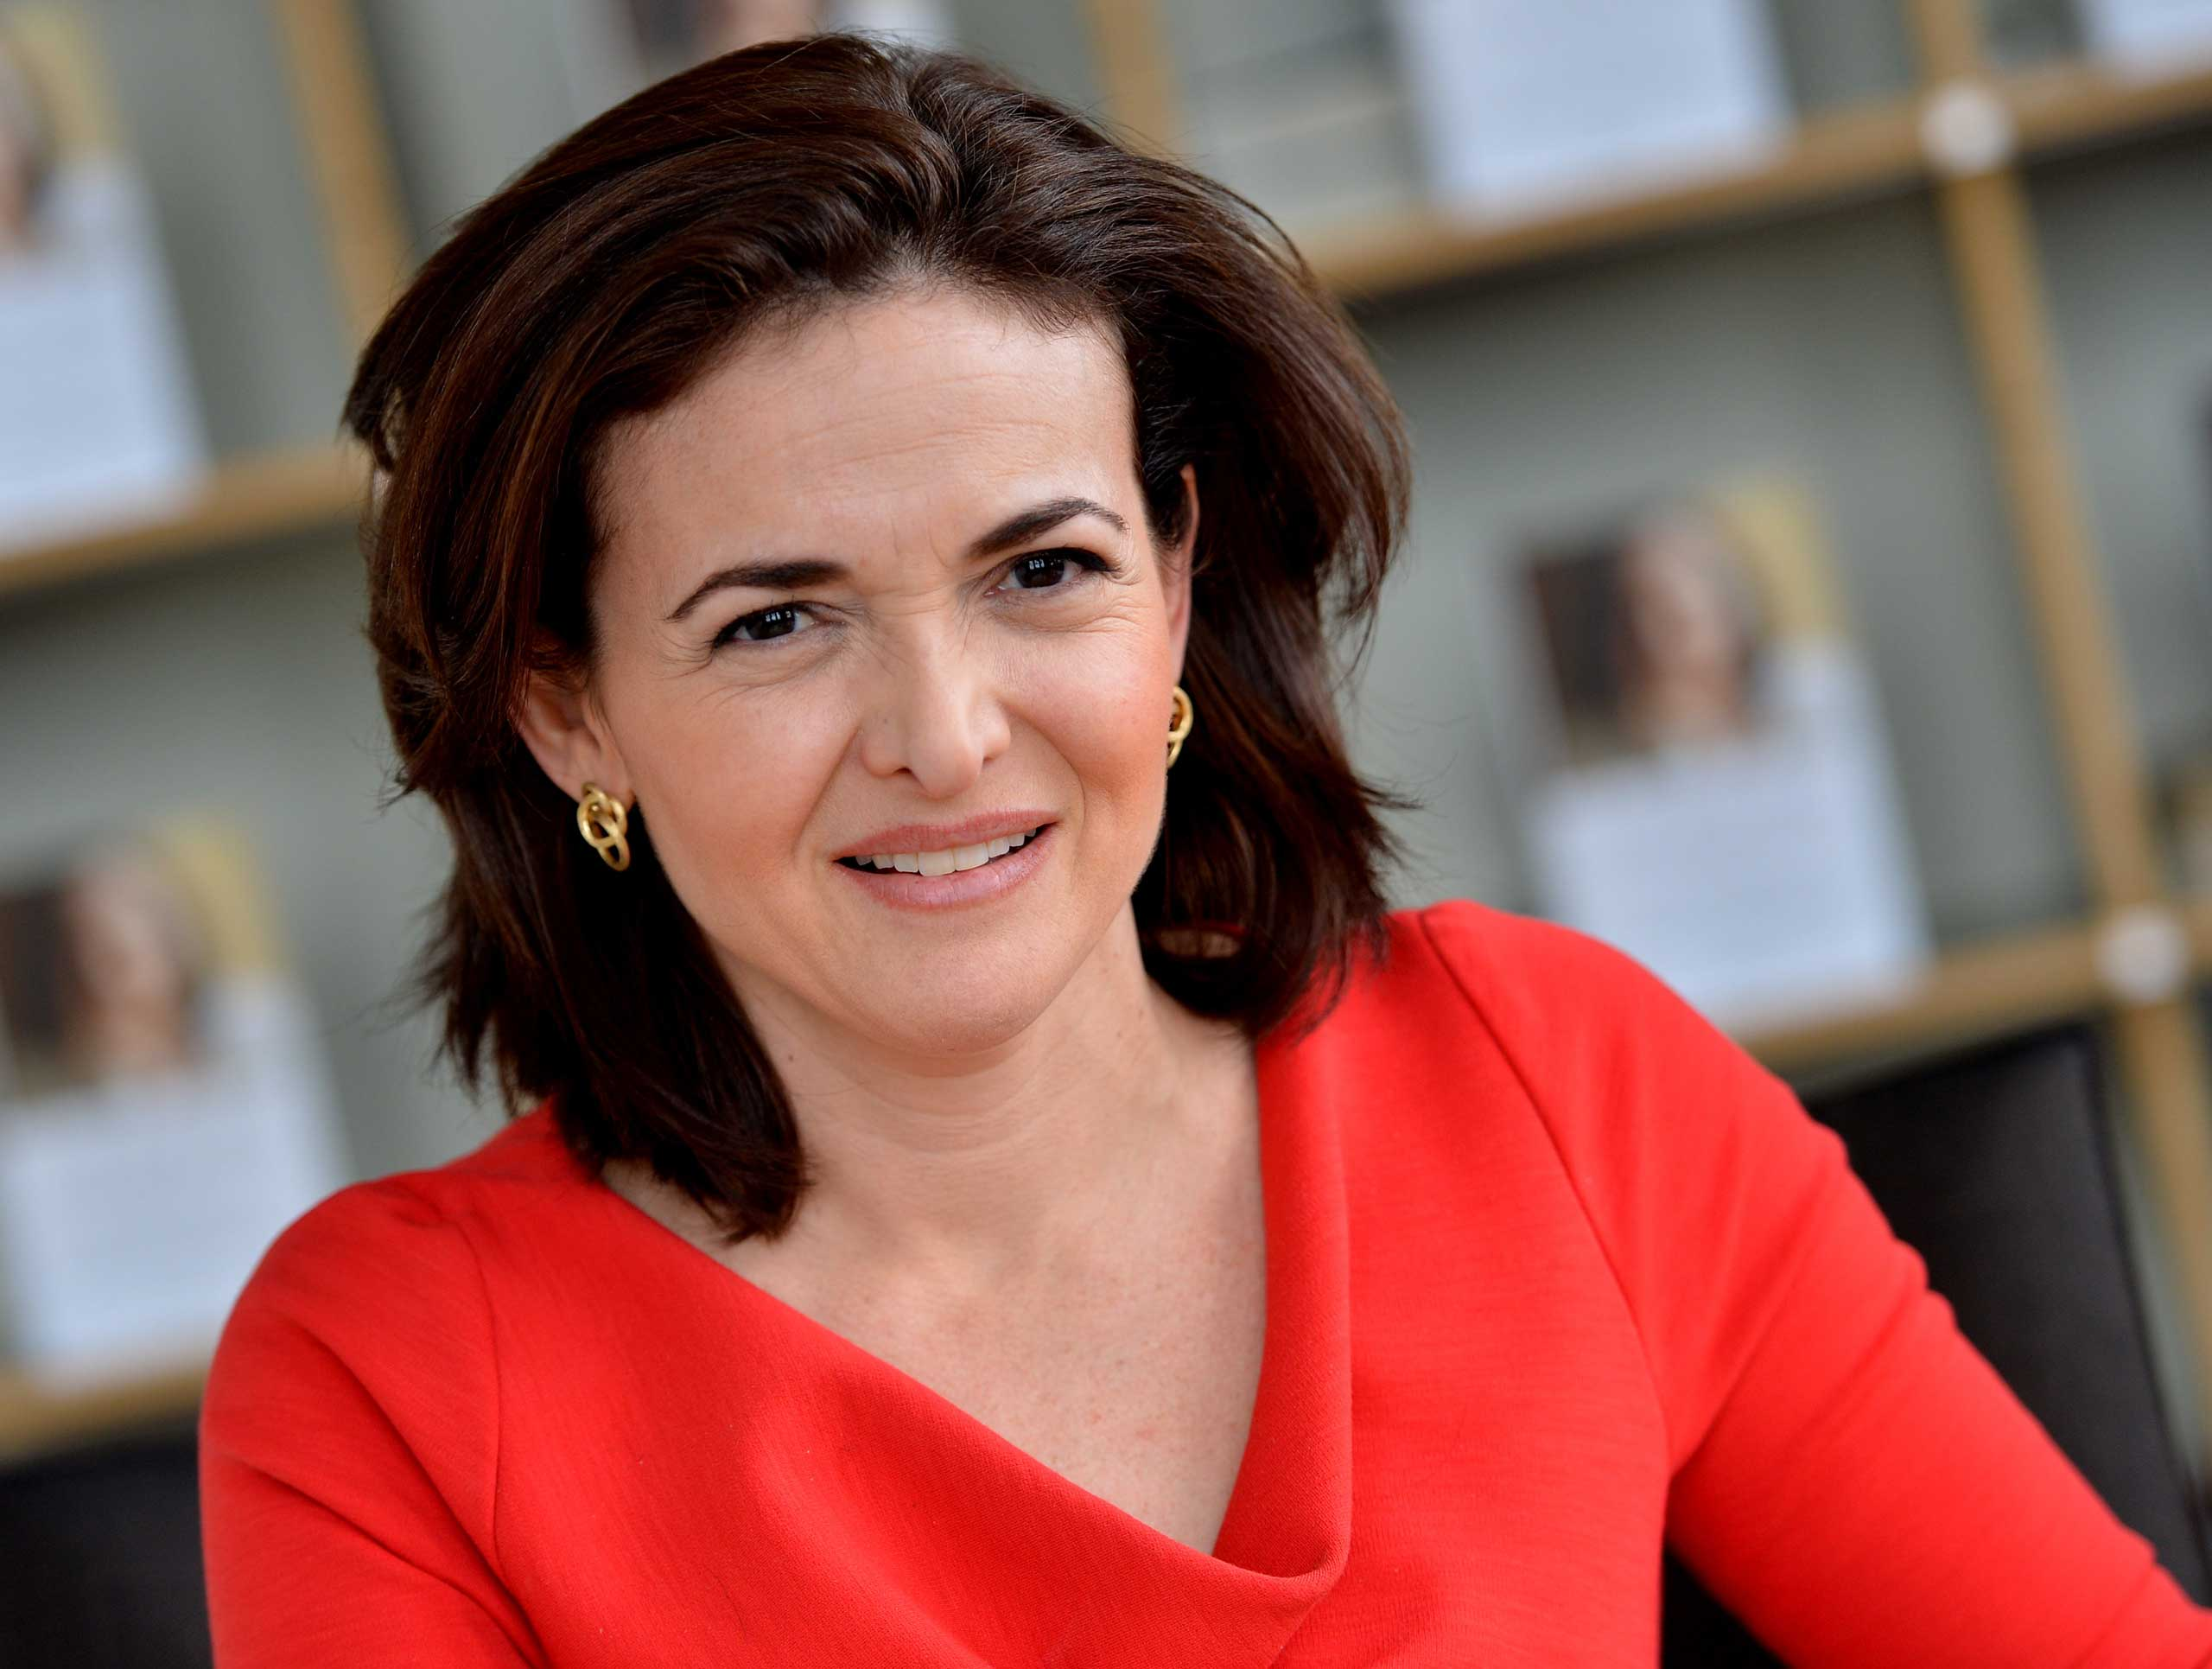 """Sheryl Sandberg is the Chief Operating Officer of Facebook and the author of """"Lean In: Women, Work and the Will to Lead."""""""